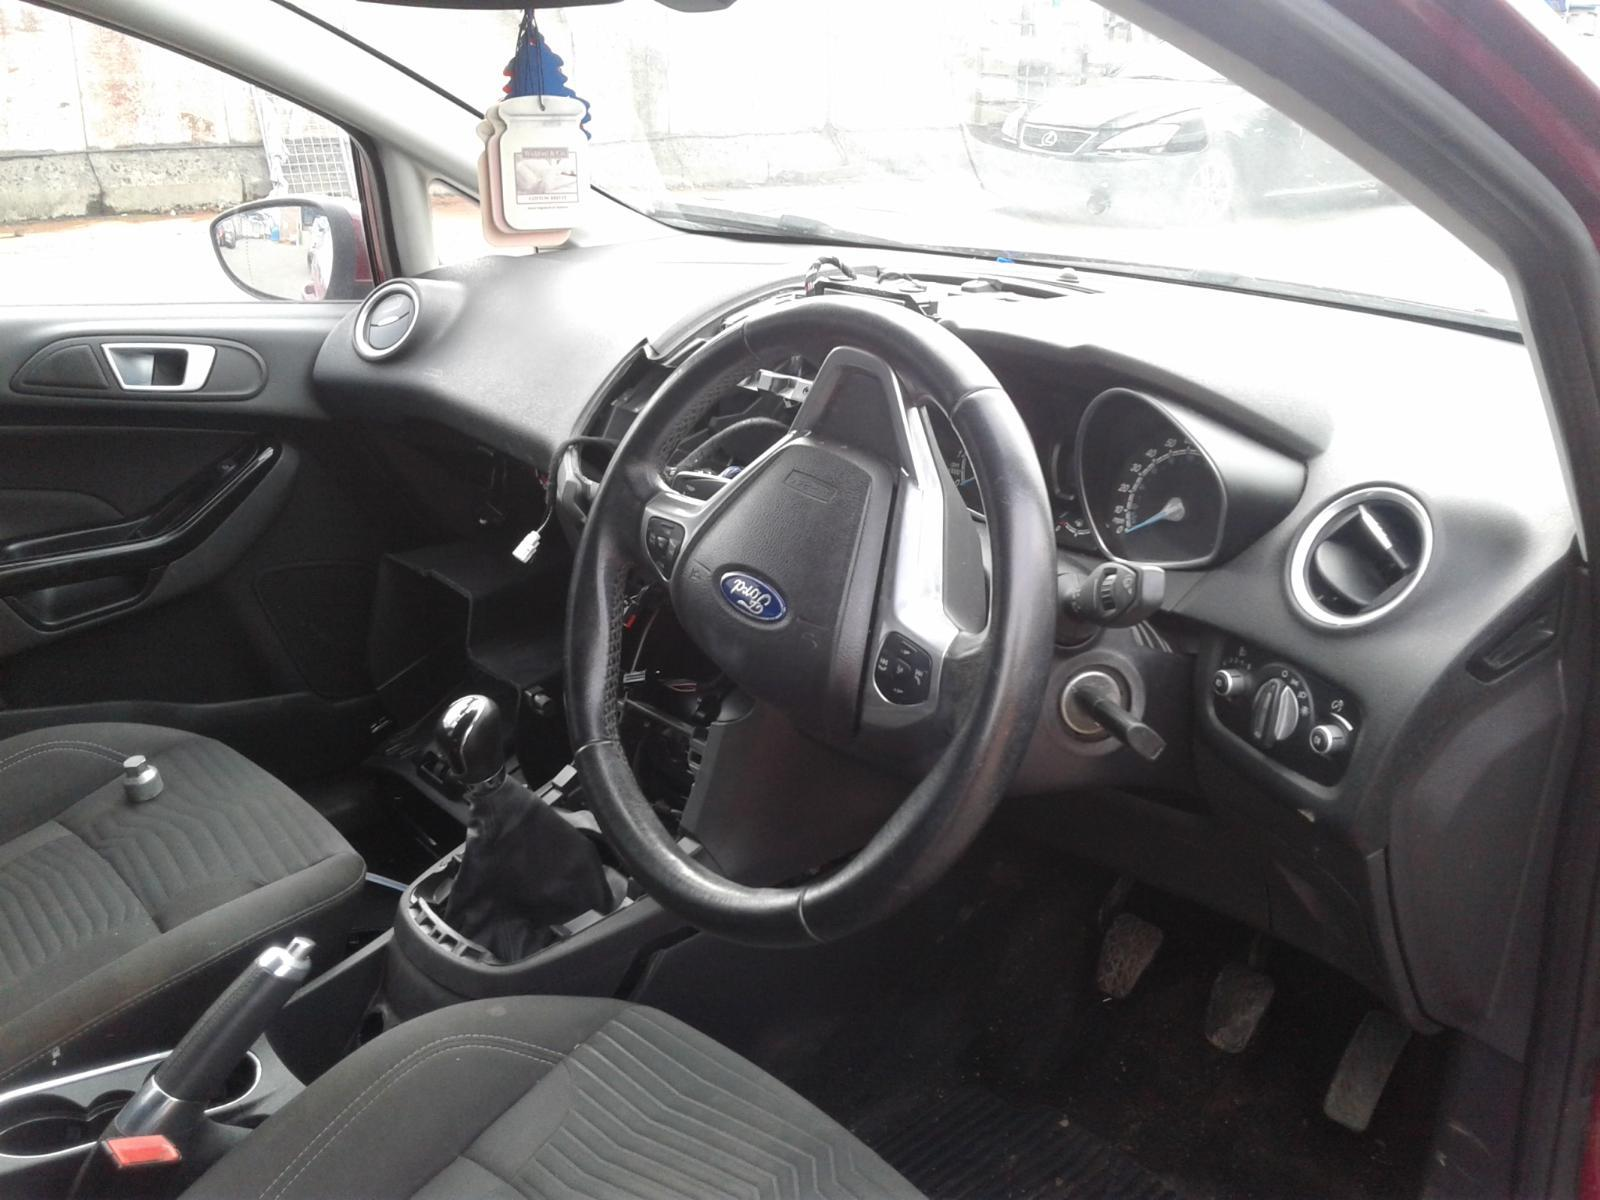 2013 FORD FIESTA Image